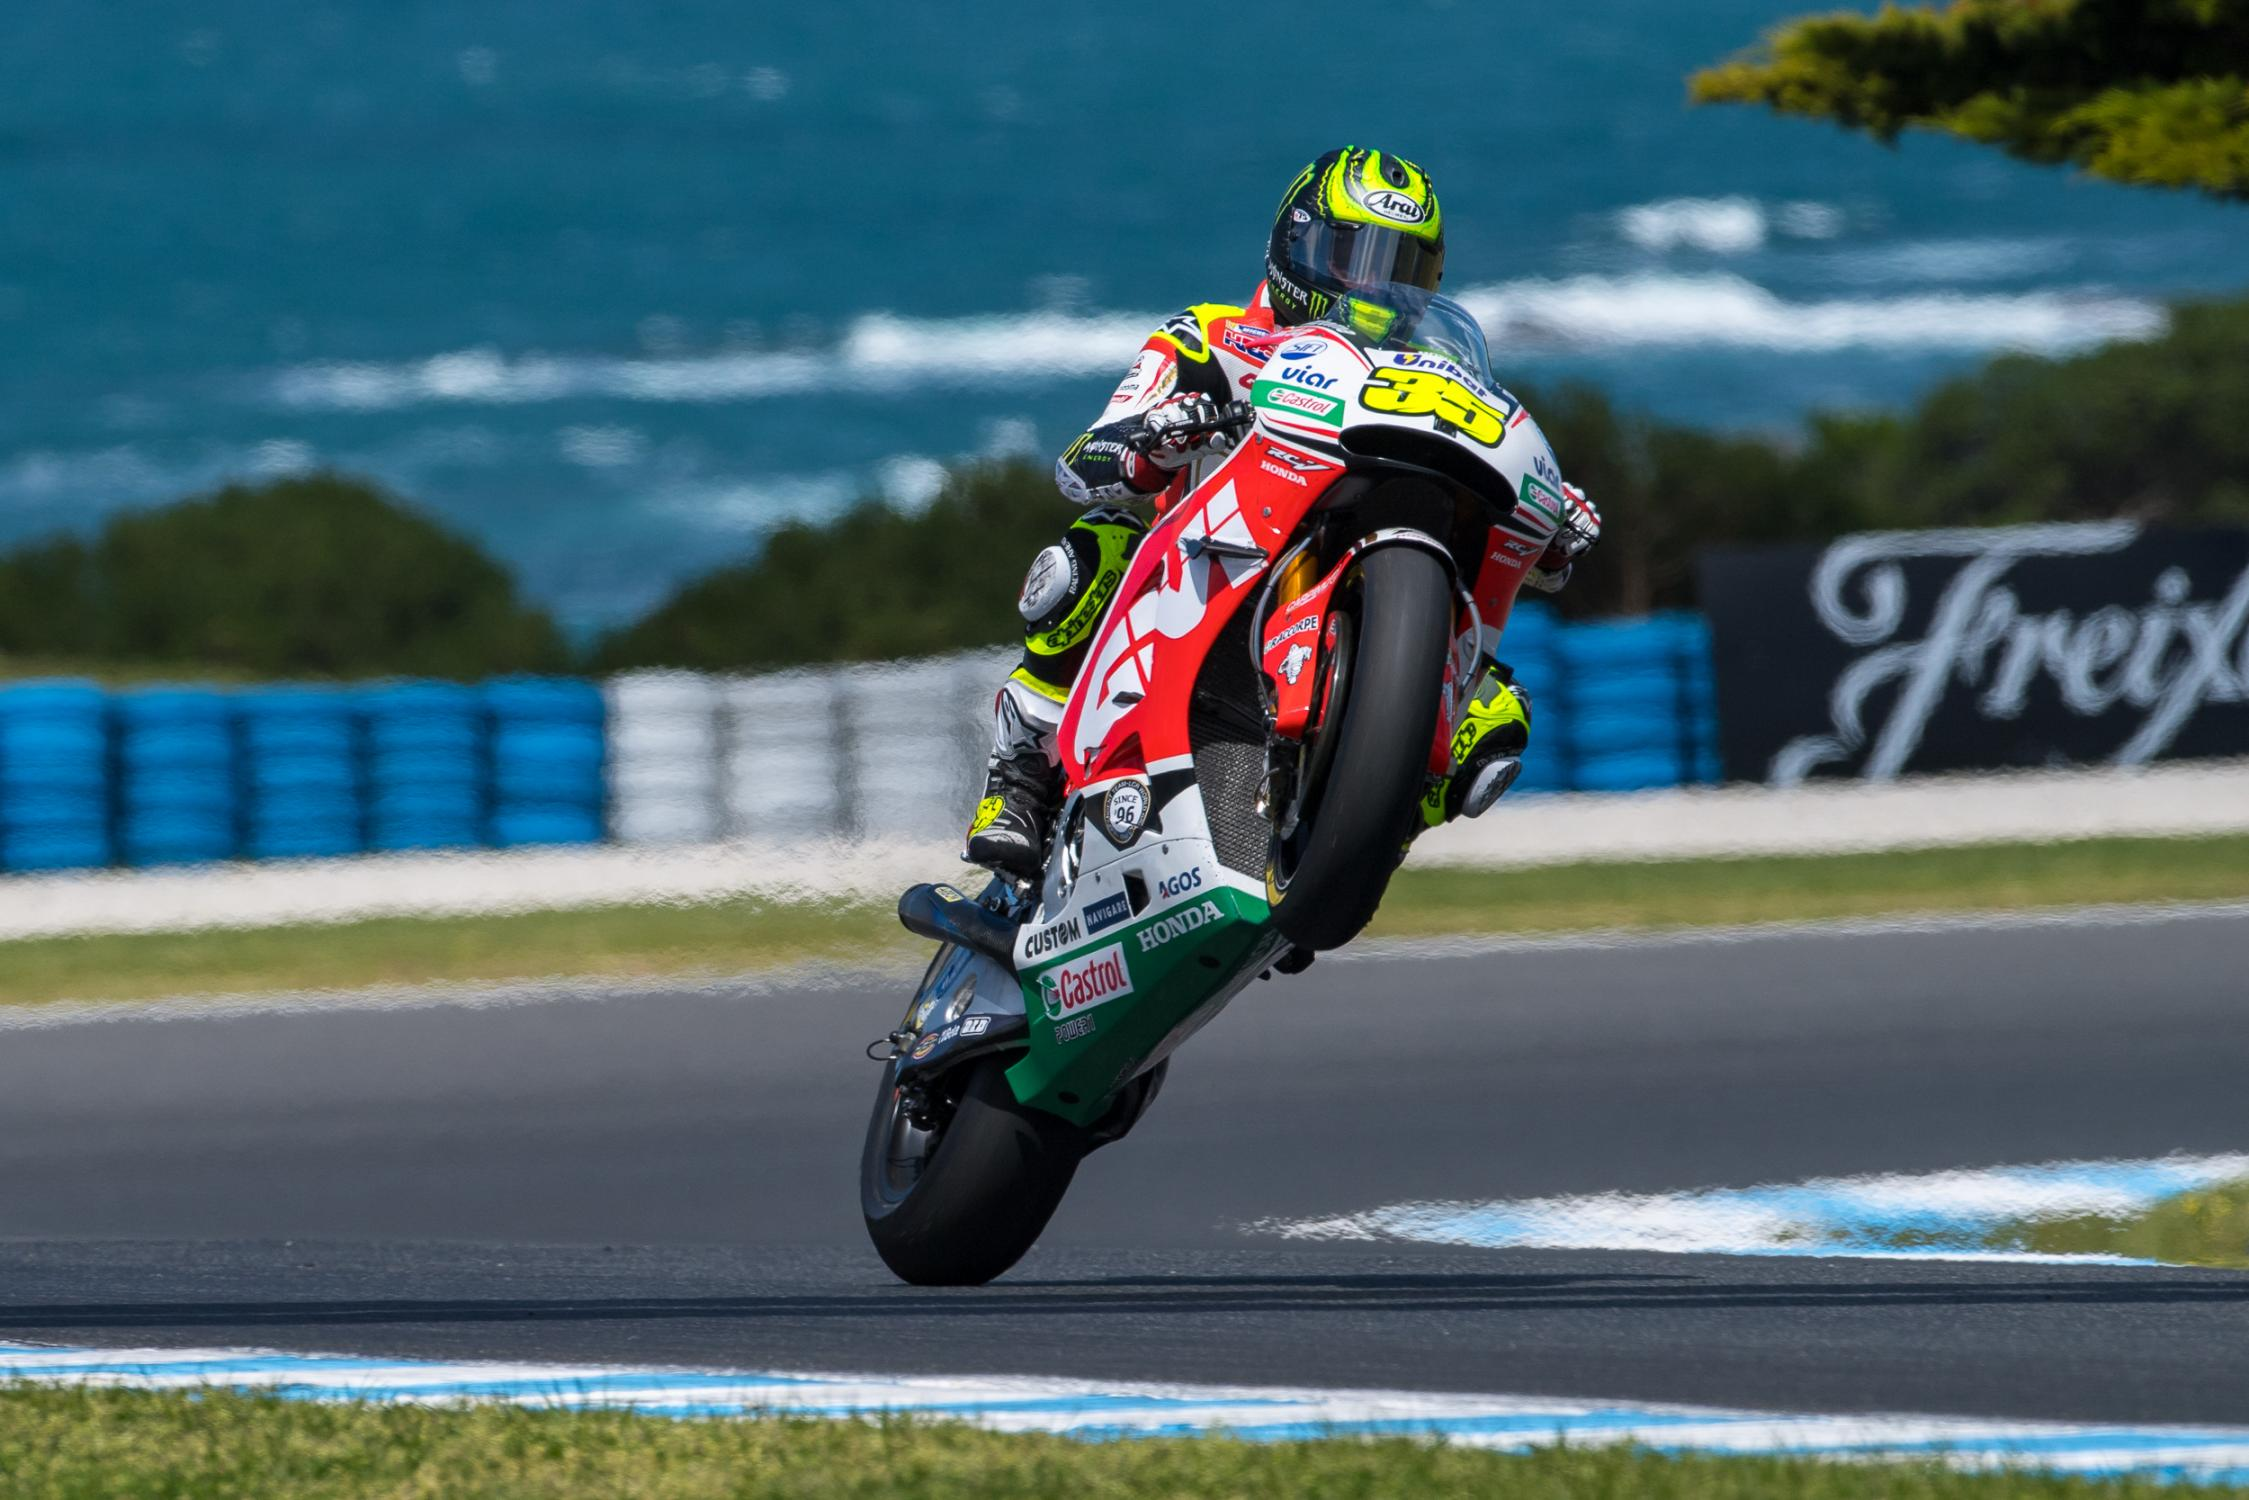 35-cal-crutchlow-englg5_2598.gallery_full_top_fullscreen.jpg